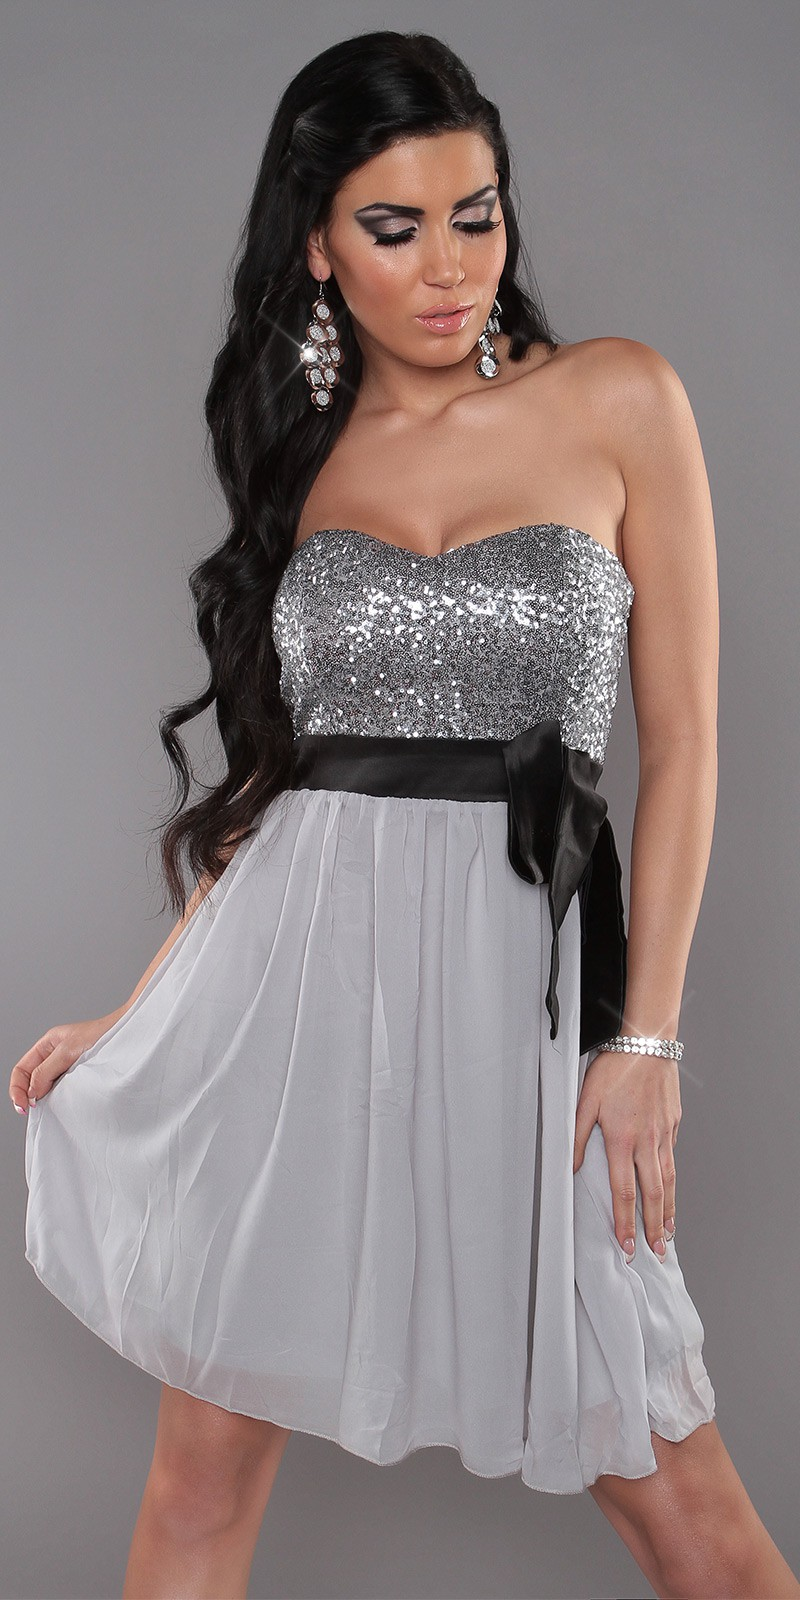 Silver Sexy Bandeau Dress With Sequins And Loop